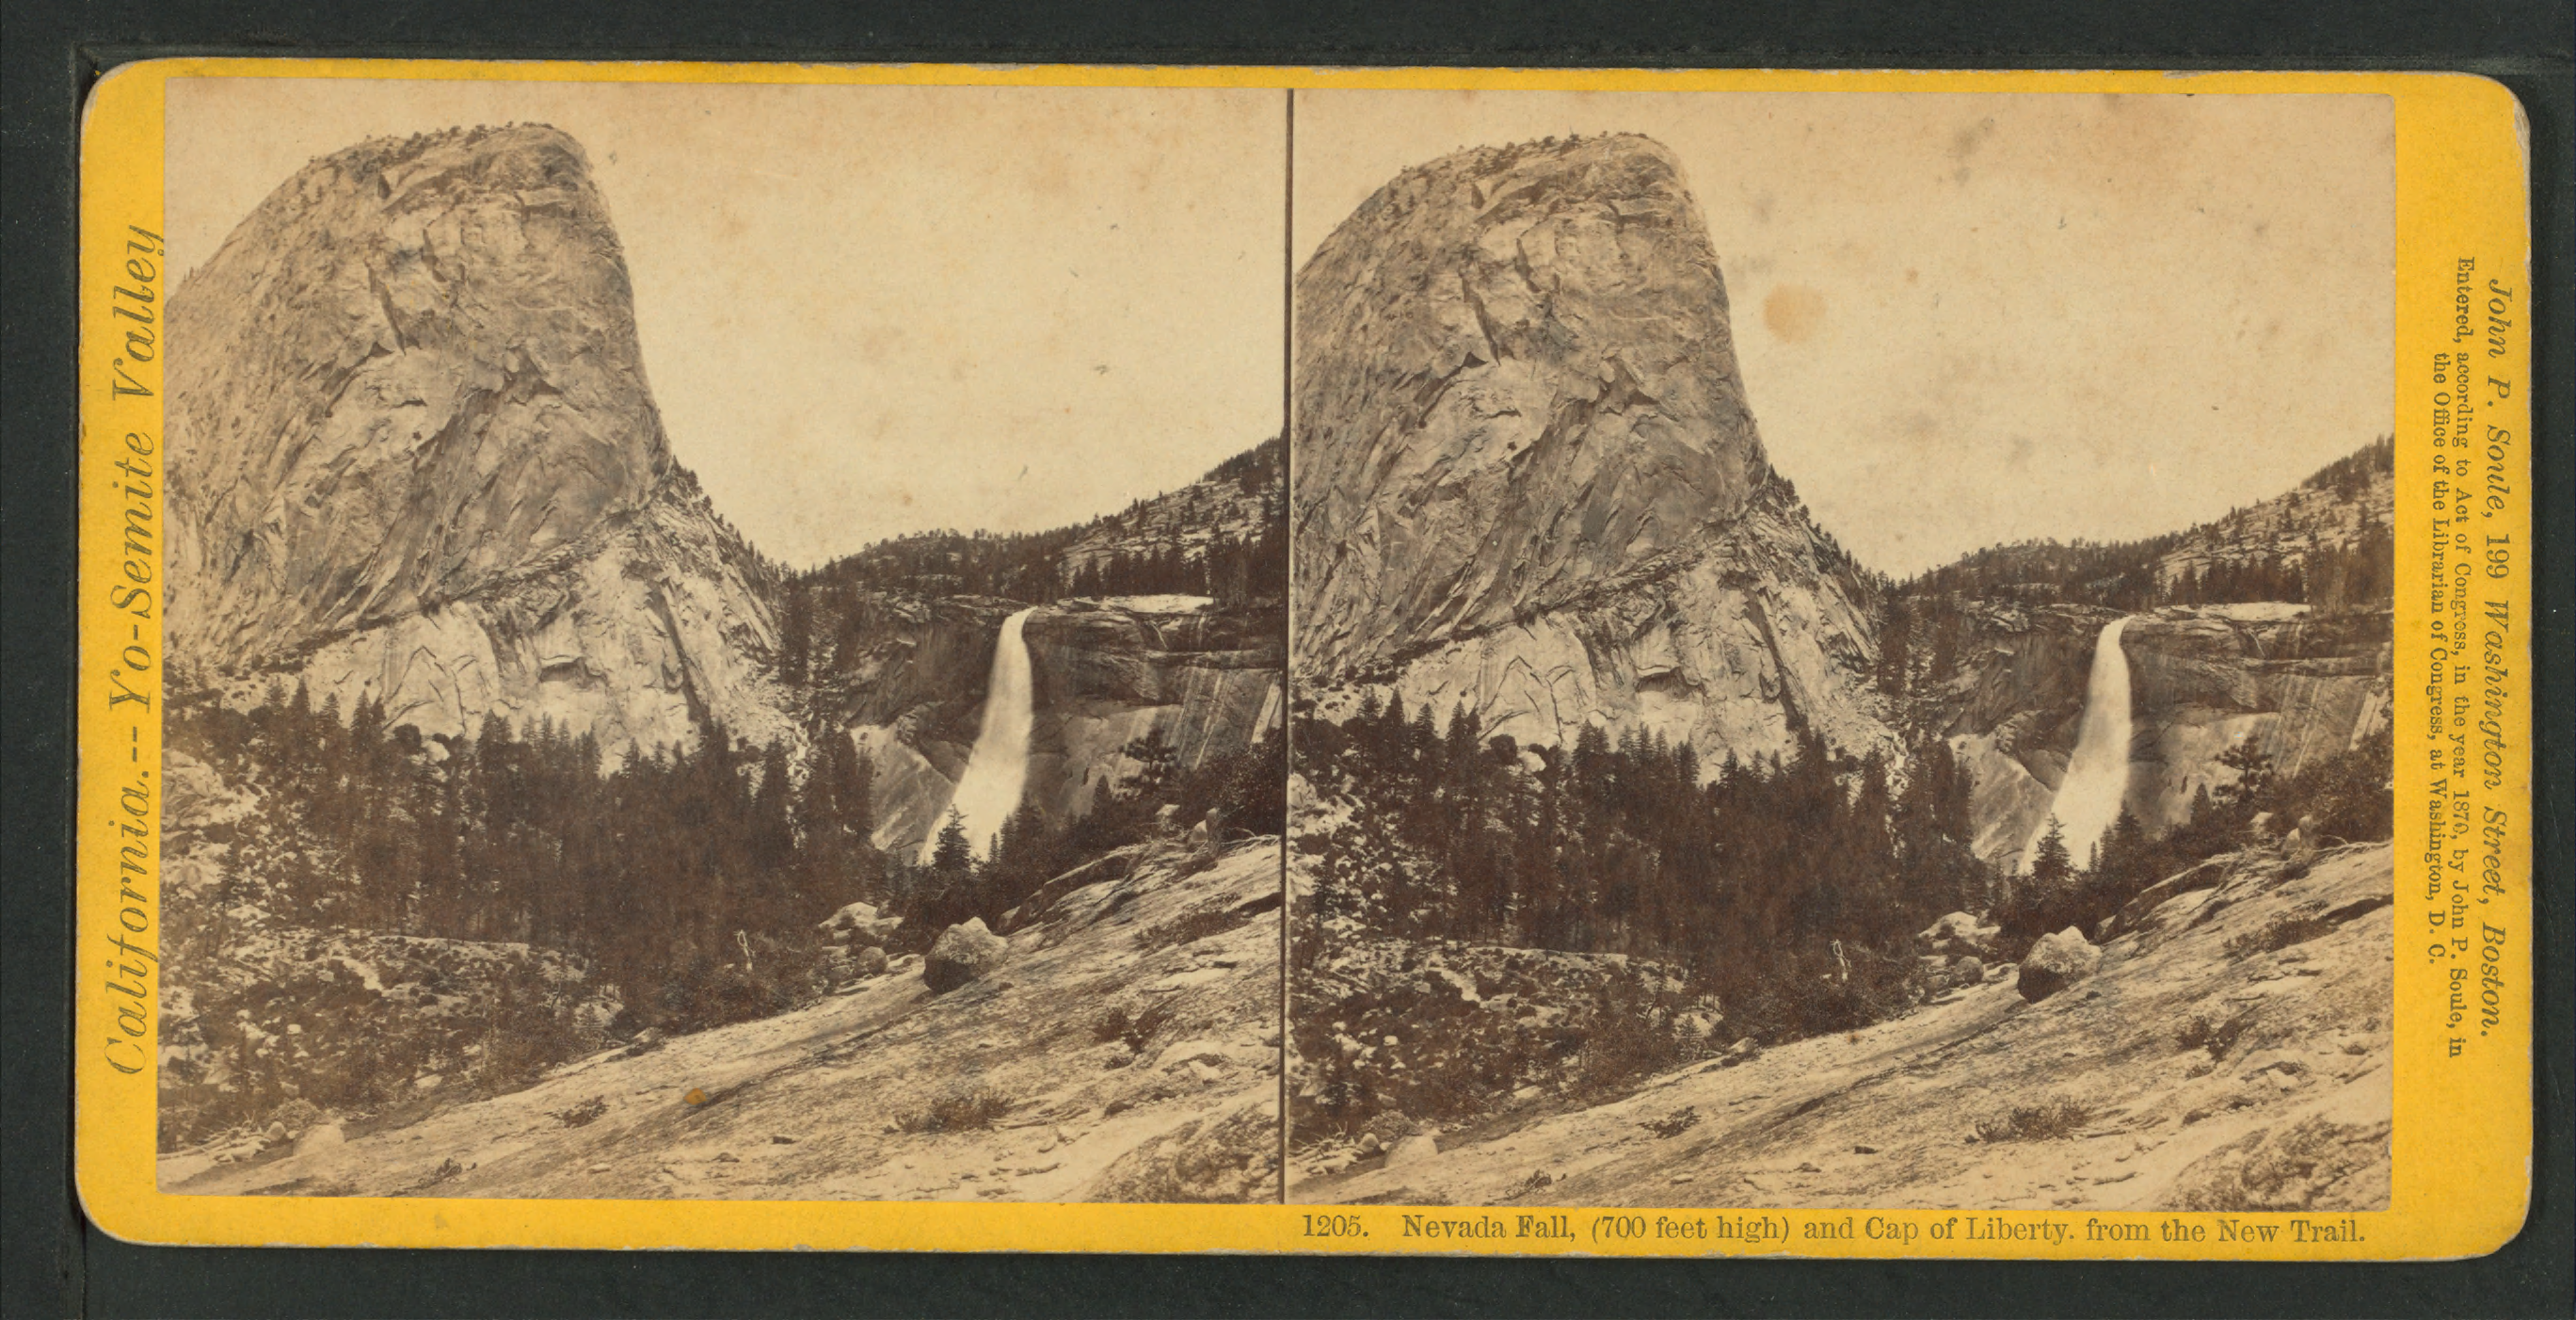 Nevada Fall Png - File:Nevada Fall, (700 feet high) and Cap of Liberty from the New ...